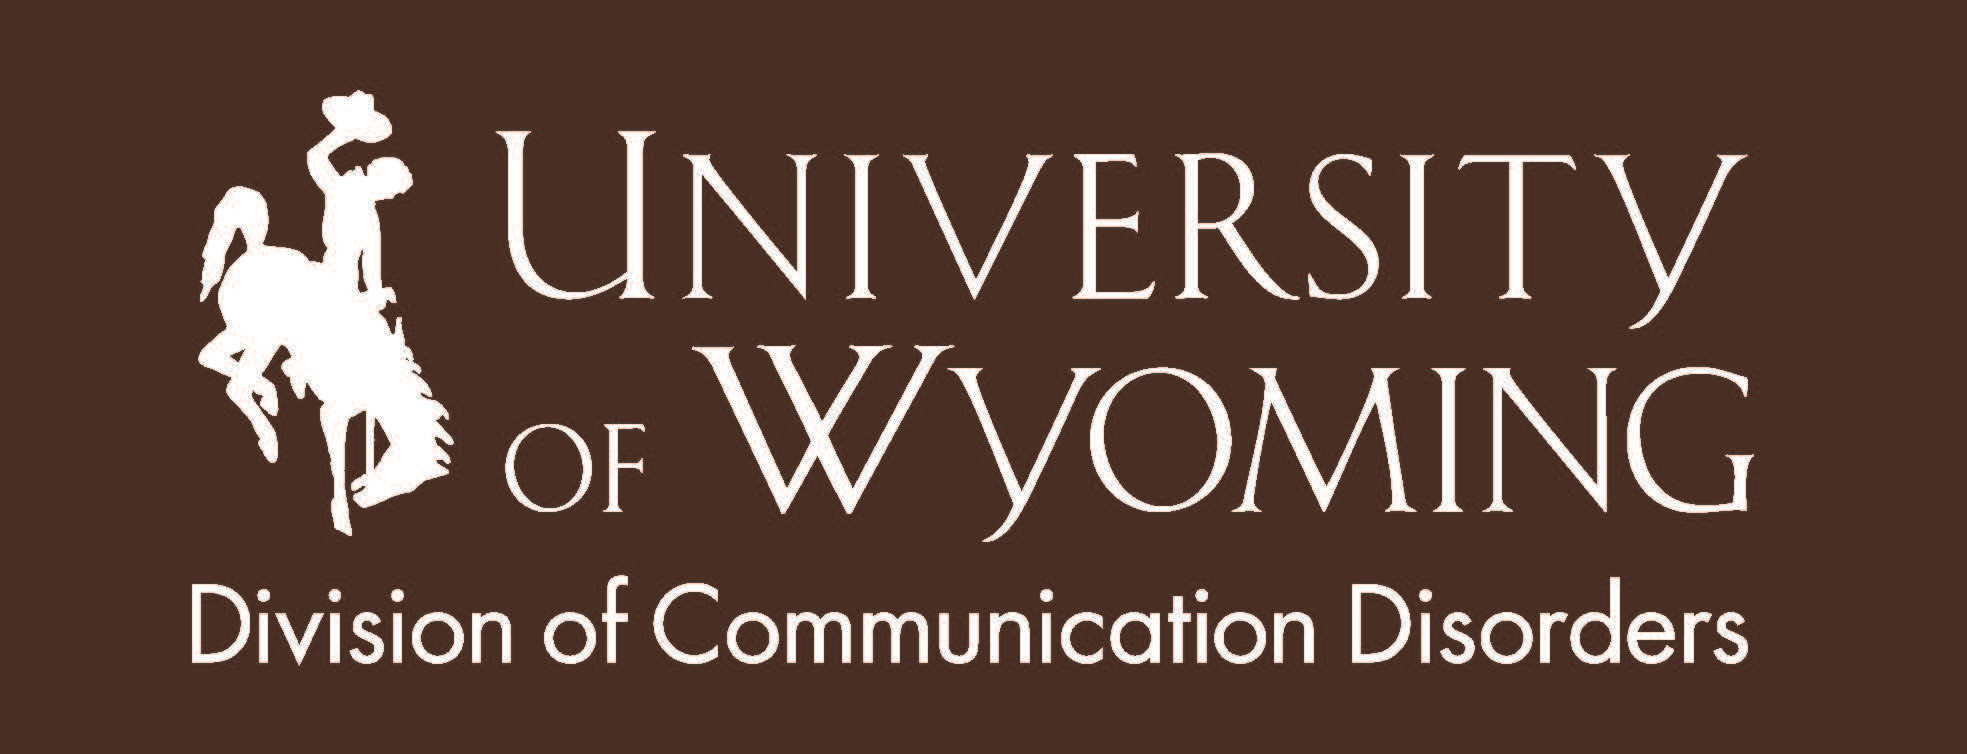 University of Wyoming Division of Communication Disorders